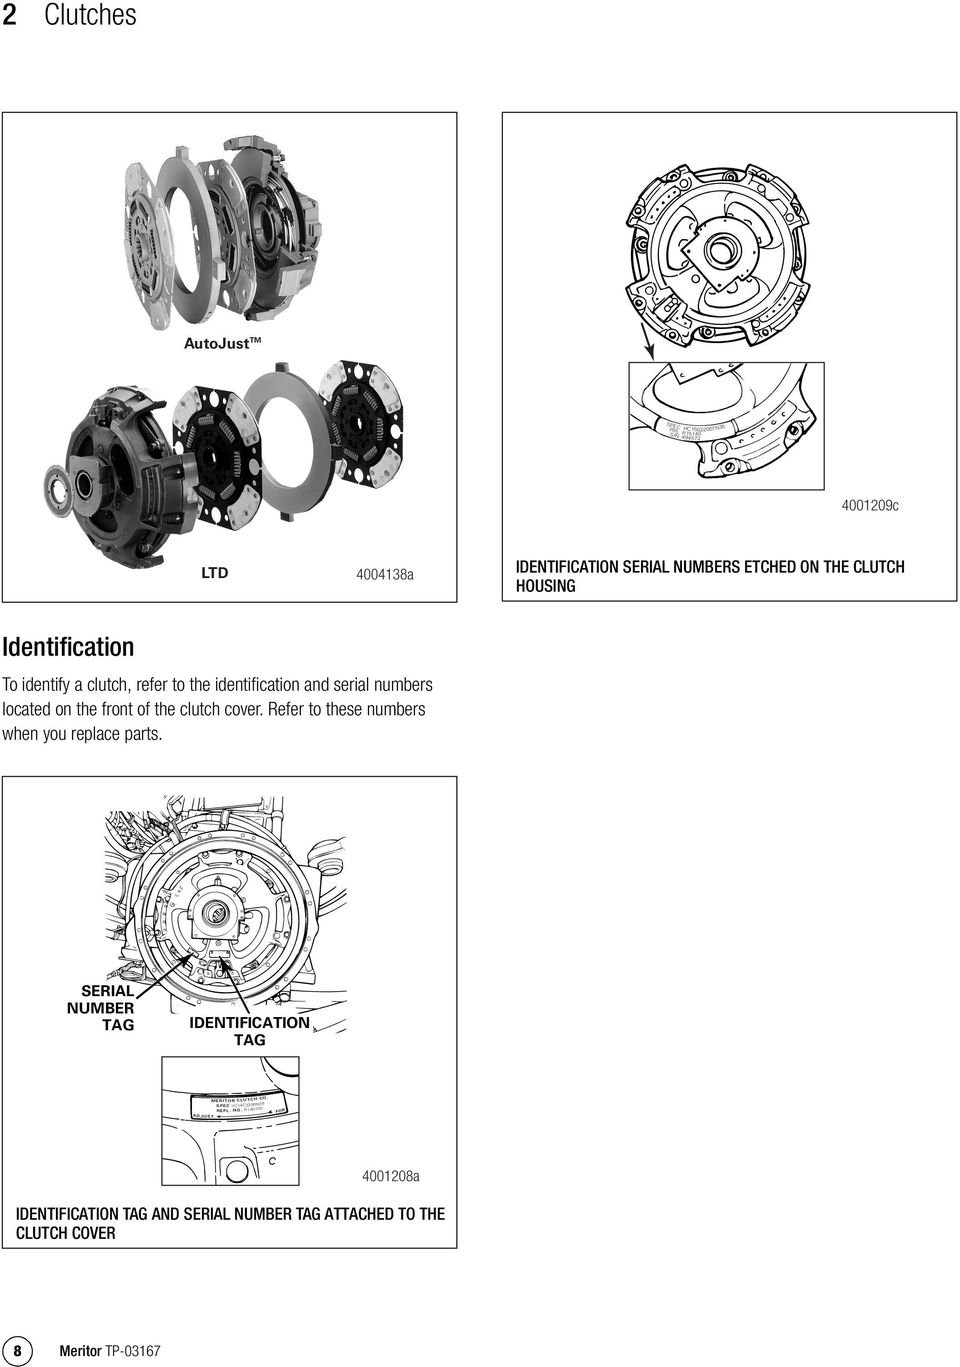 identify a clutch, refer to the identification and serial numbers located on the front of the clutch cover.